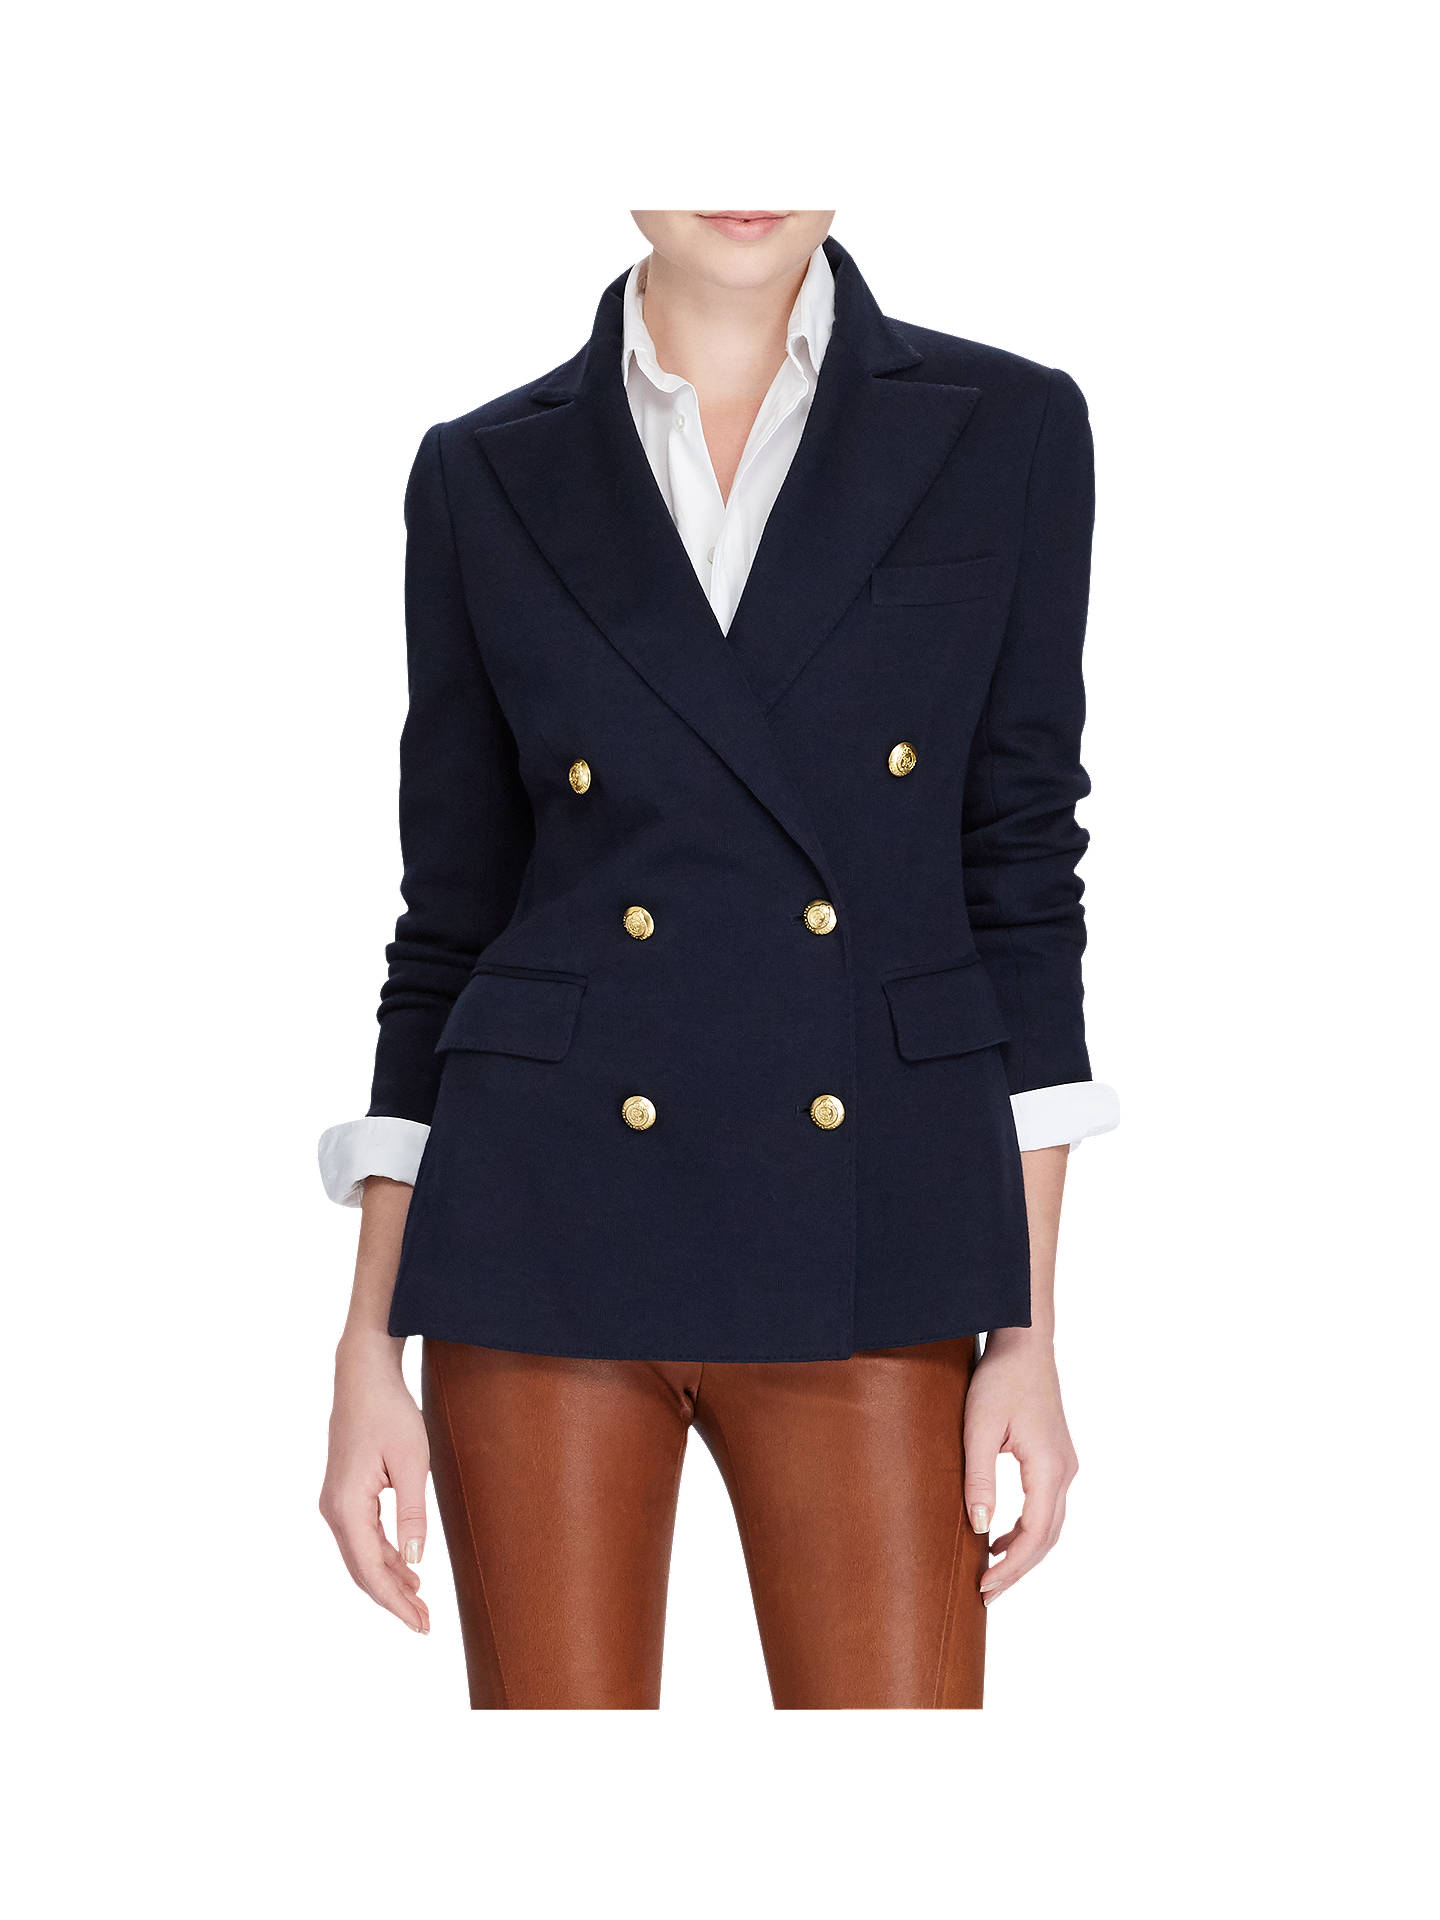 BuyPolo Ralph Lauren Knit Double Breasted Blazer, Park Avenue Navy, 8 Online at johnlewis.com